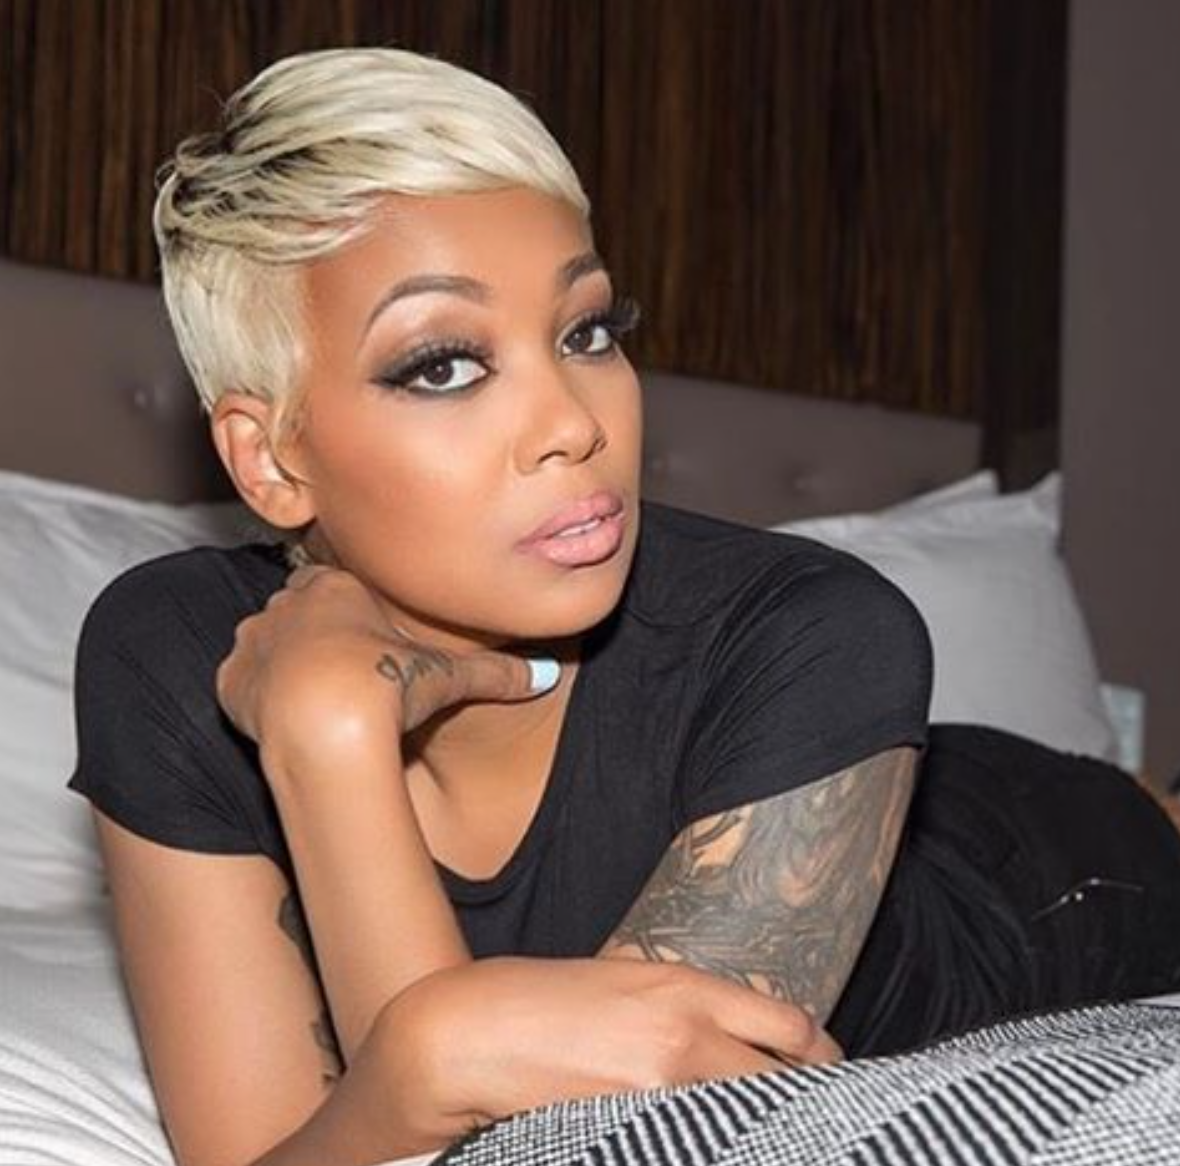 Monicabrown Kills This Blonde Pixie Https Blackhairinformation Com Hairstyle Gallery Monicabrown Kills Blo Short Hair Styles Pixie Sassy Hair Hair Styles